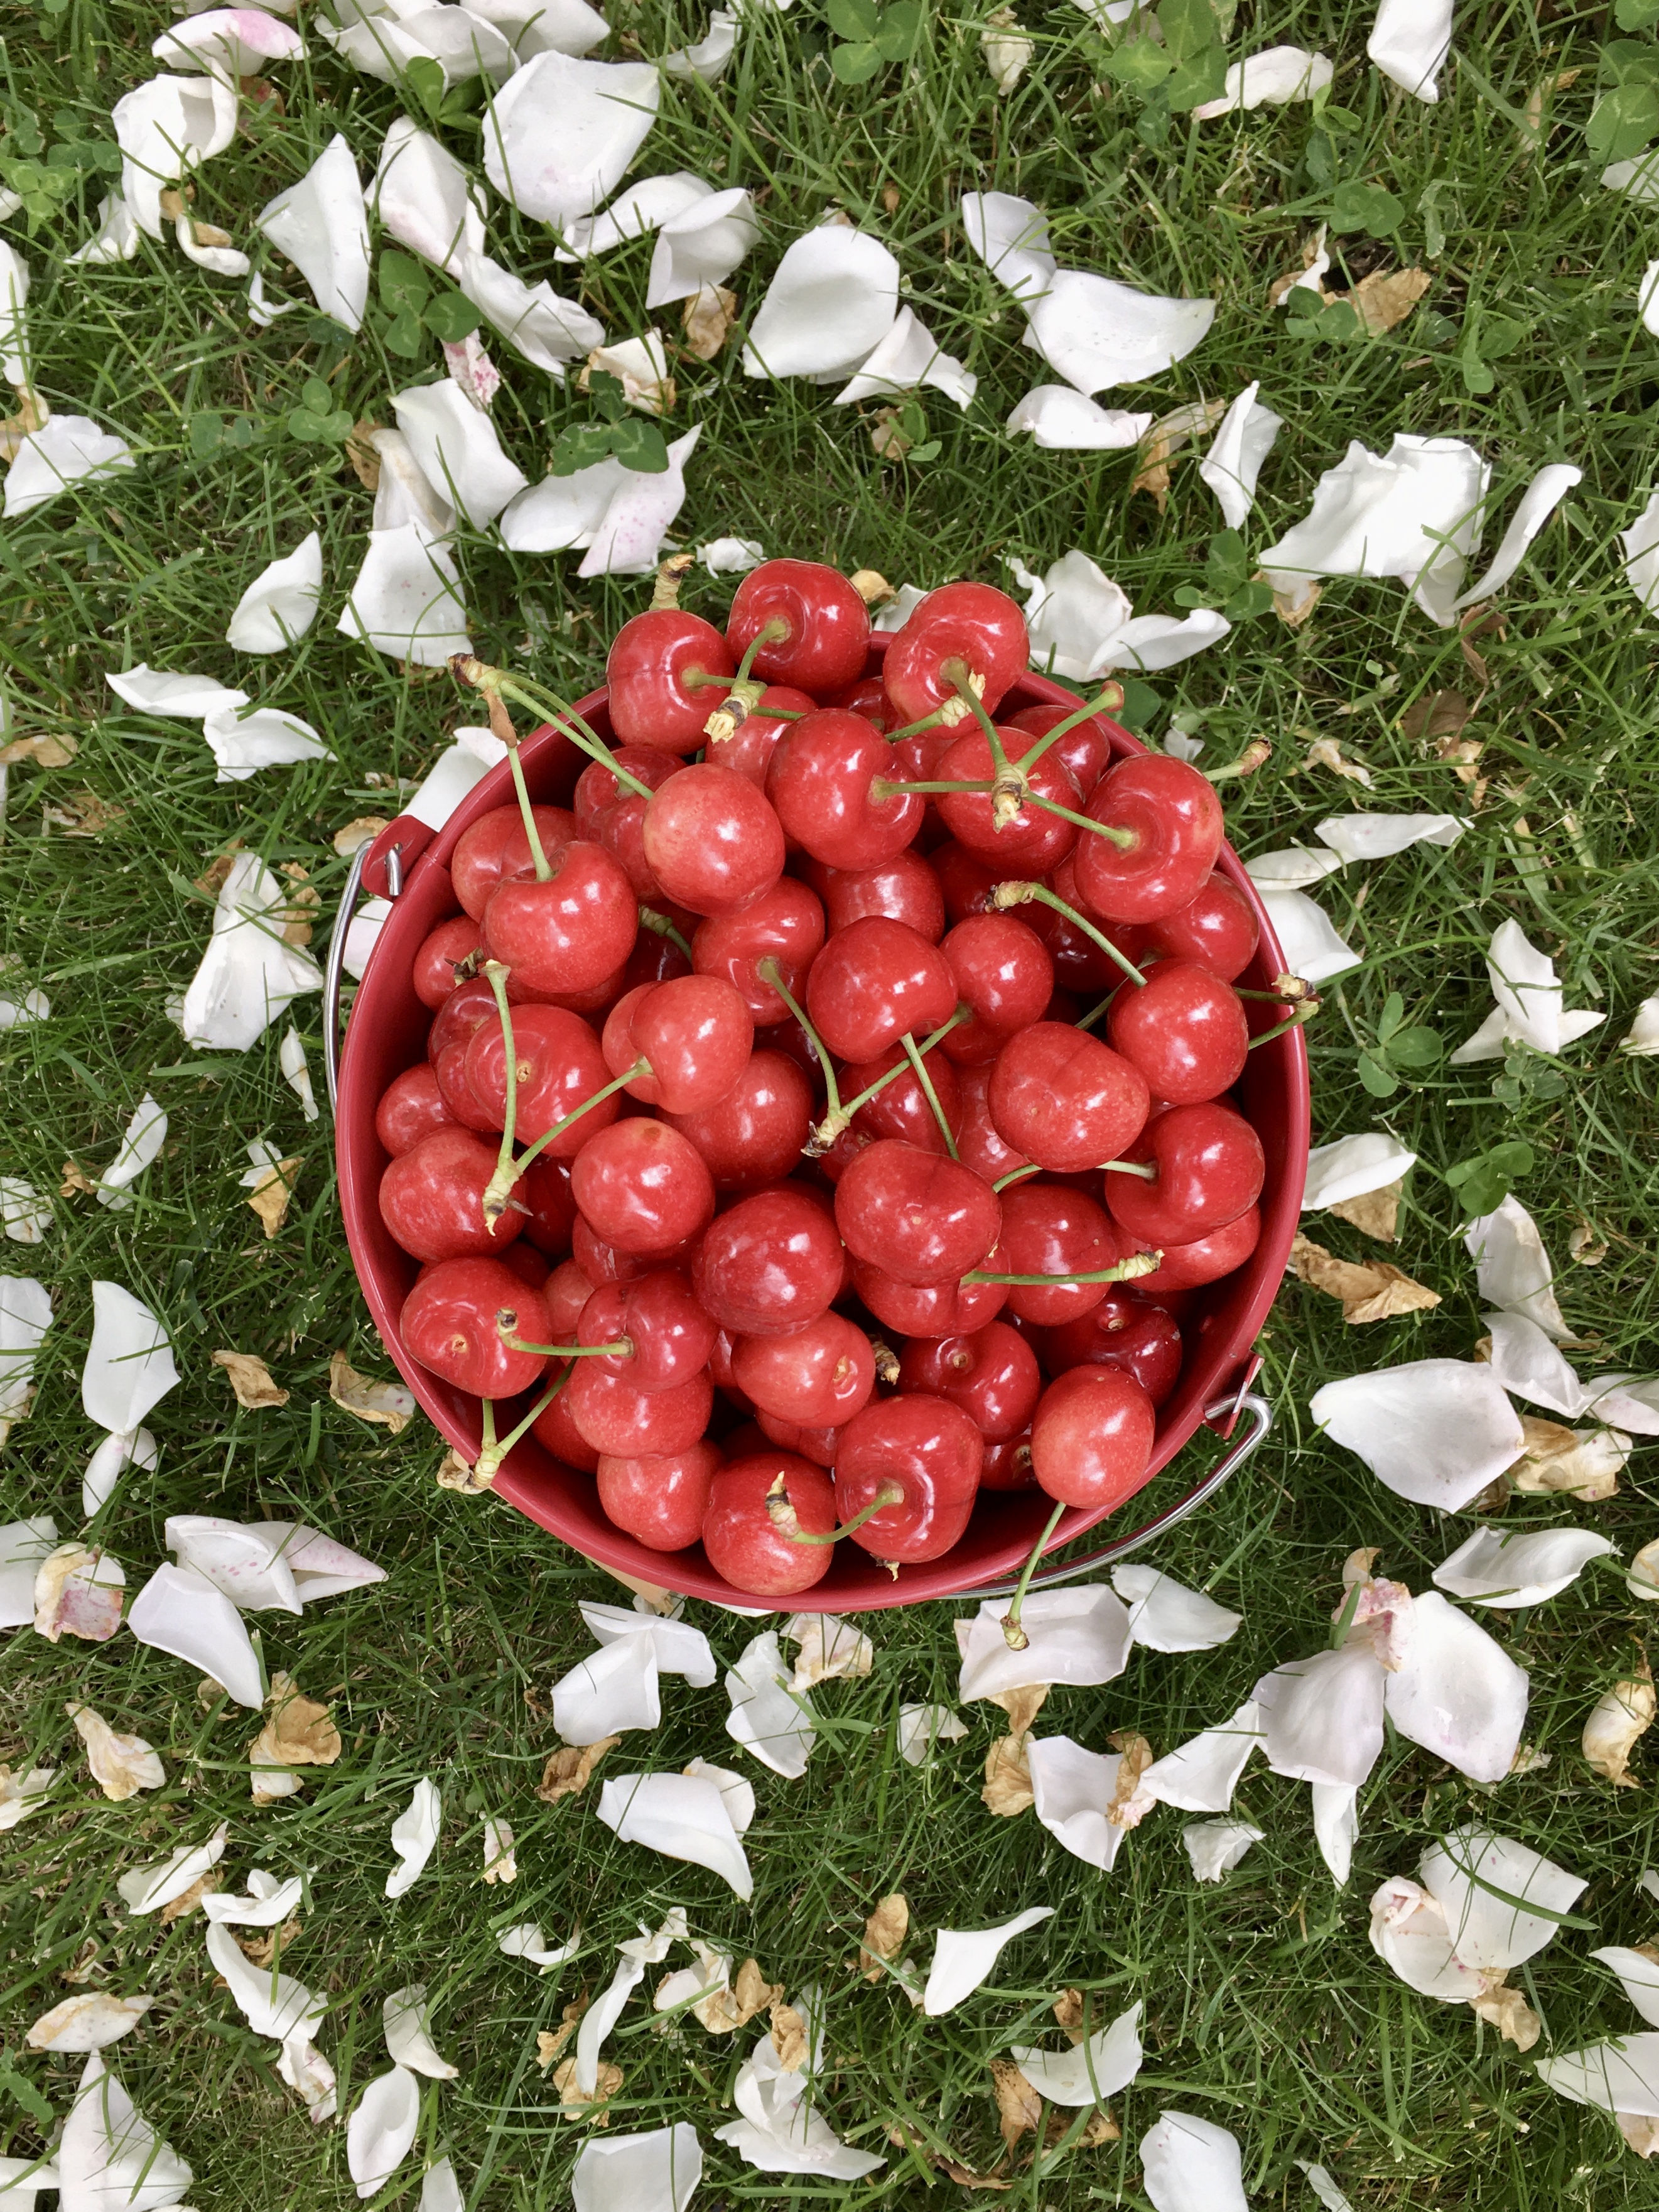 picked cherries in a bucket seen from above